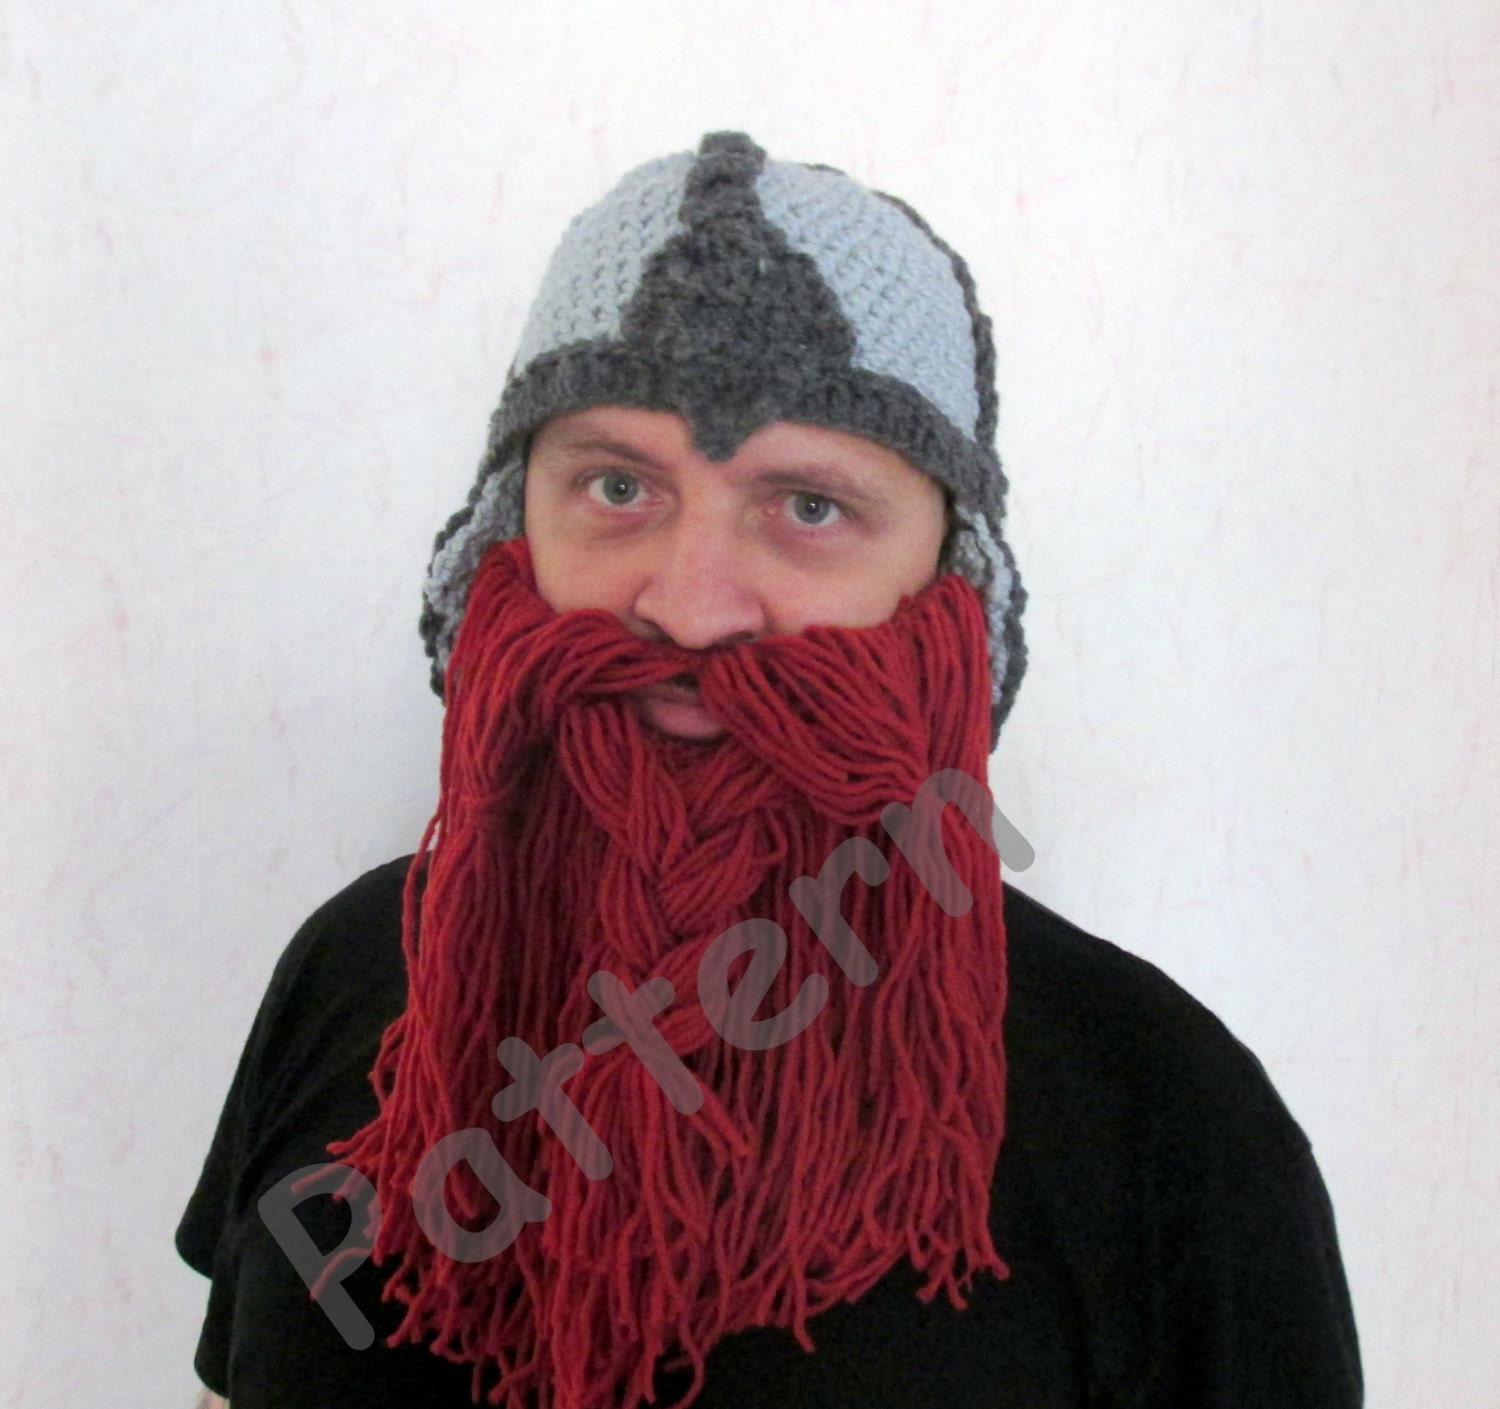 Crochet Viking Hat With Beard : Crochet Viking hat pattern Crochet Beard hat by paintcrochet